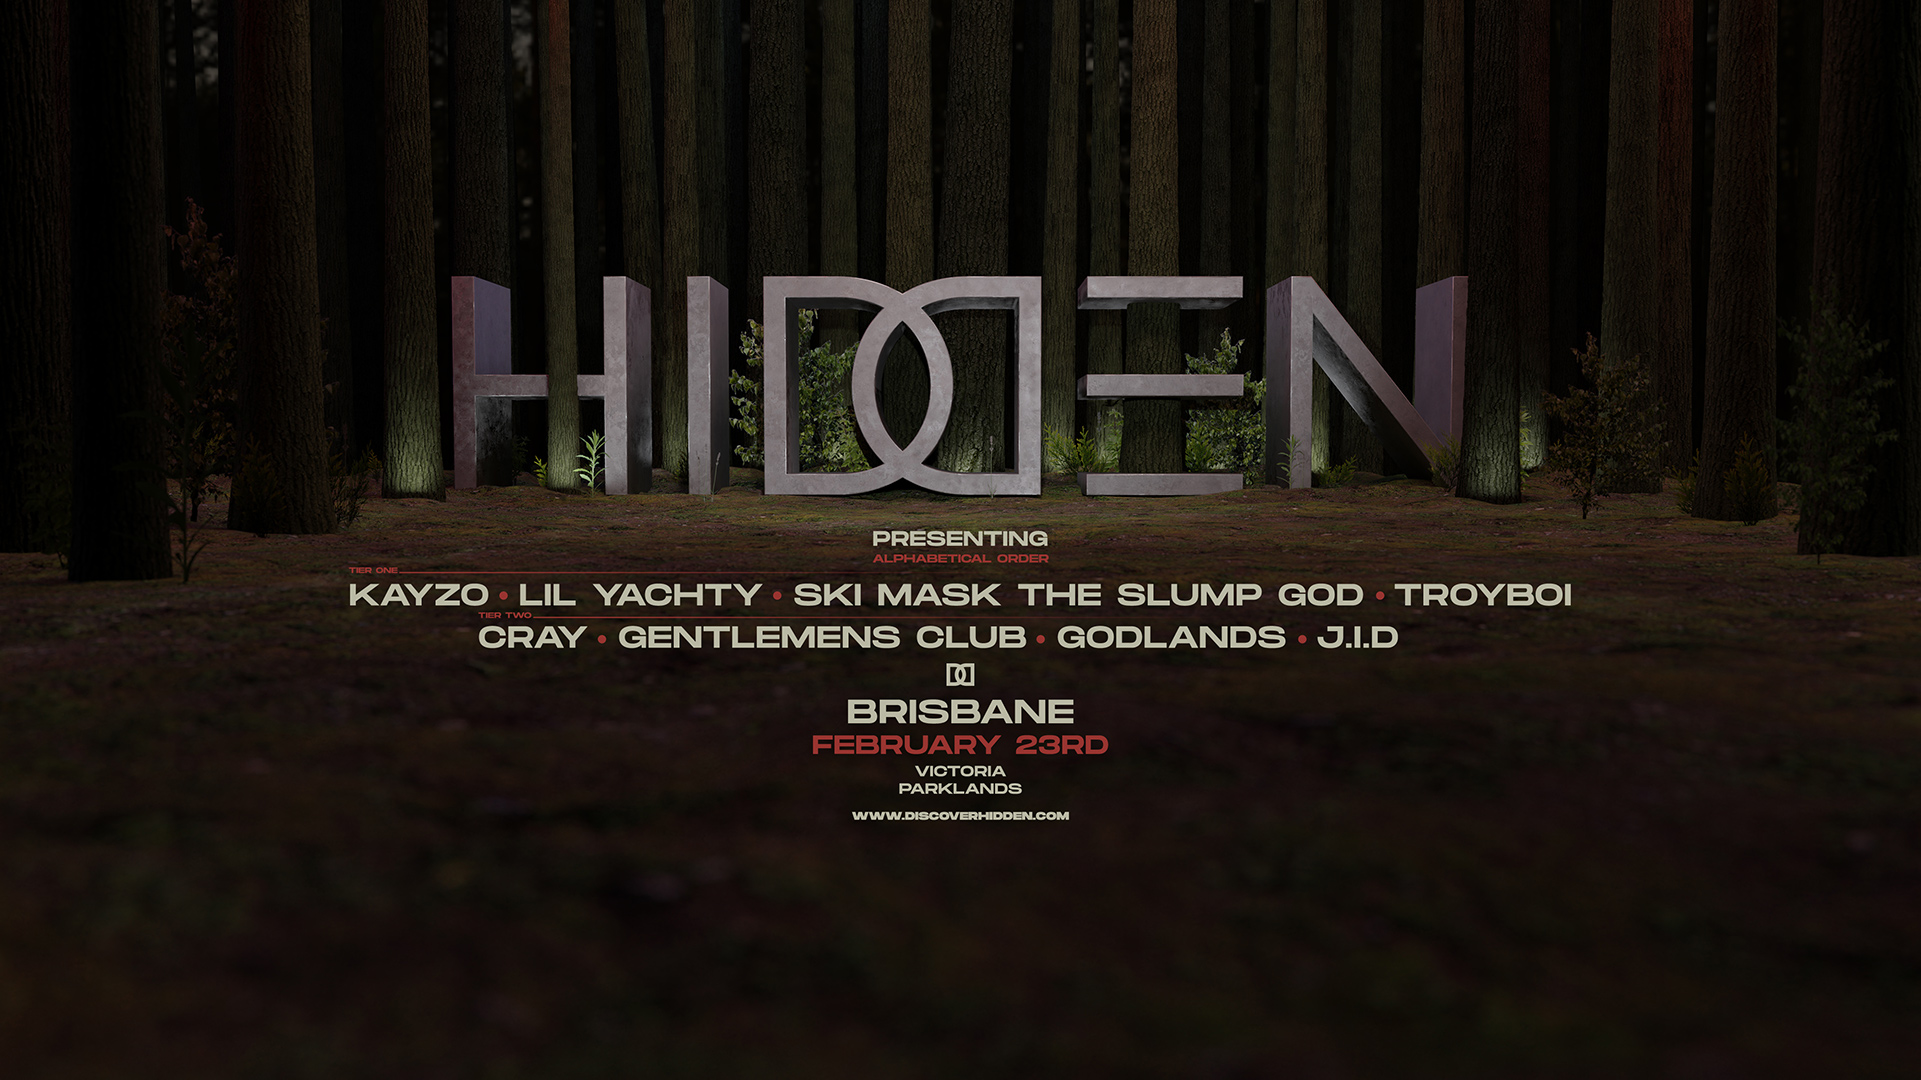 Tickets for HIDDEN 2019 - BRISBANE in Brisbane from Ticketbooth